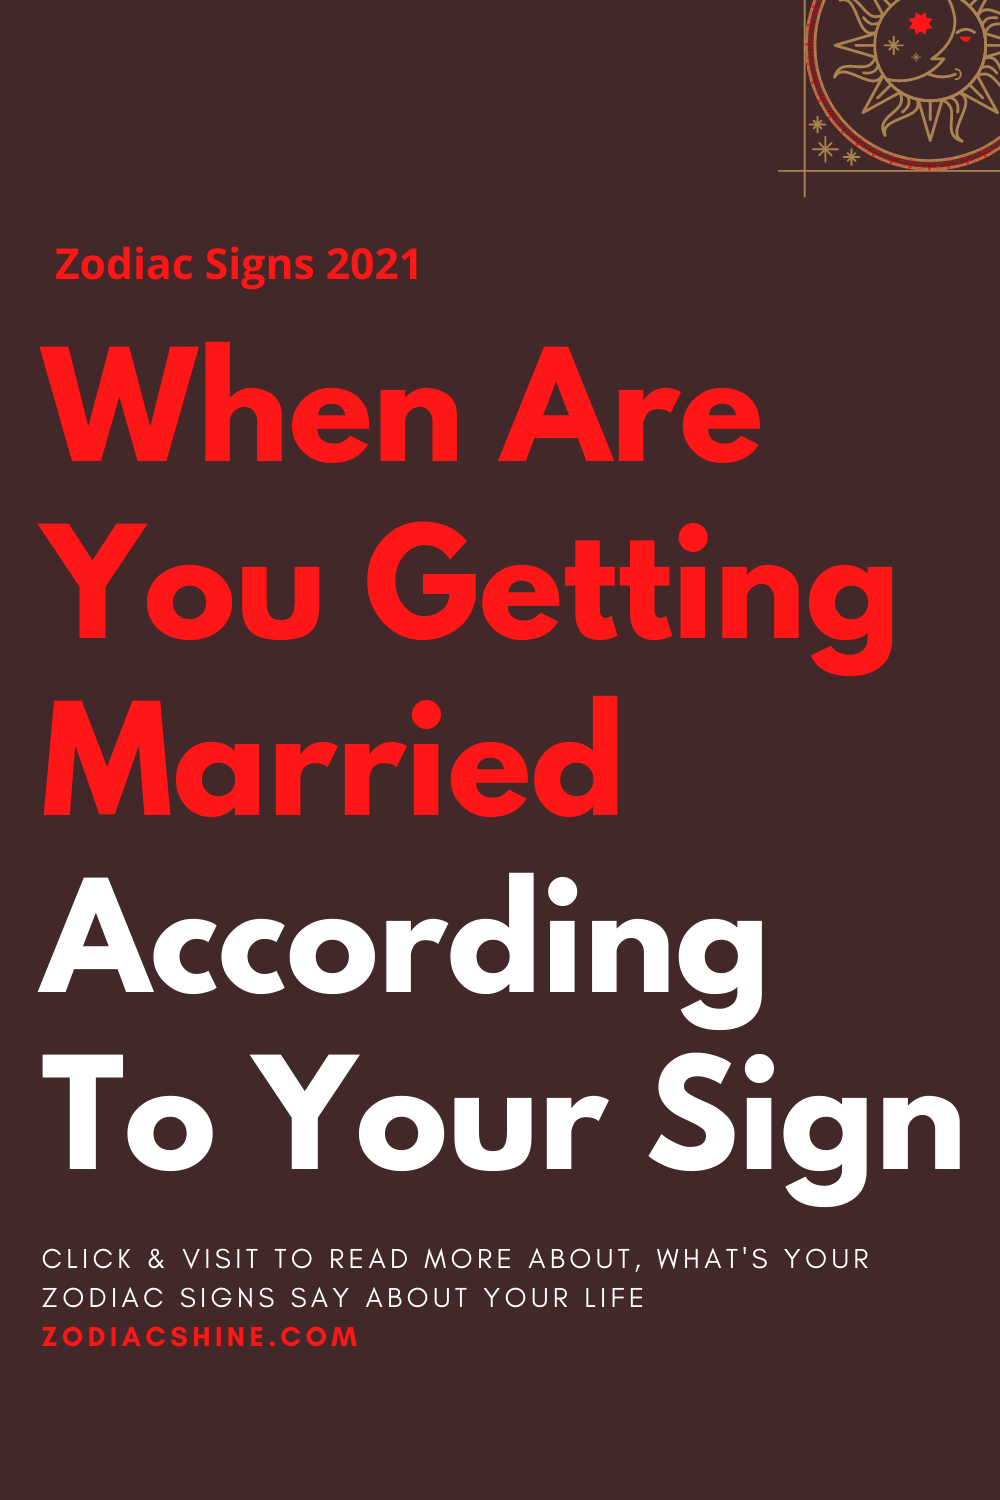 When Are You Getting Married According To Your Sign